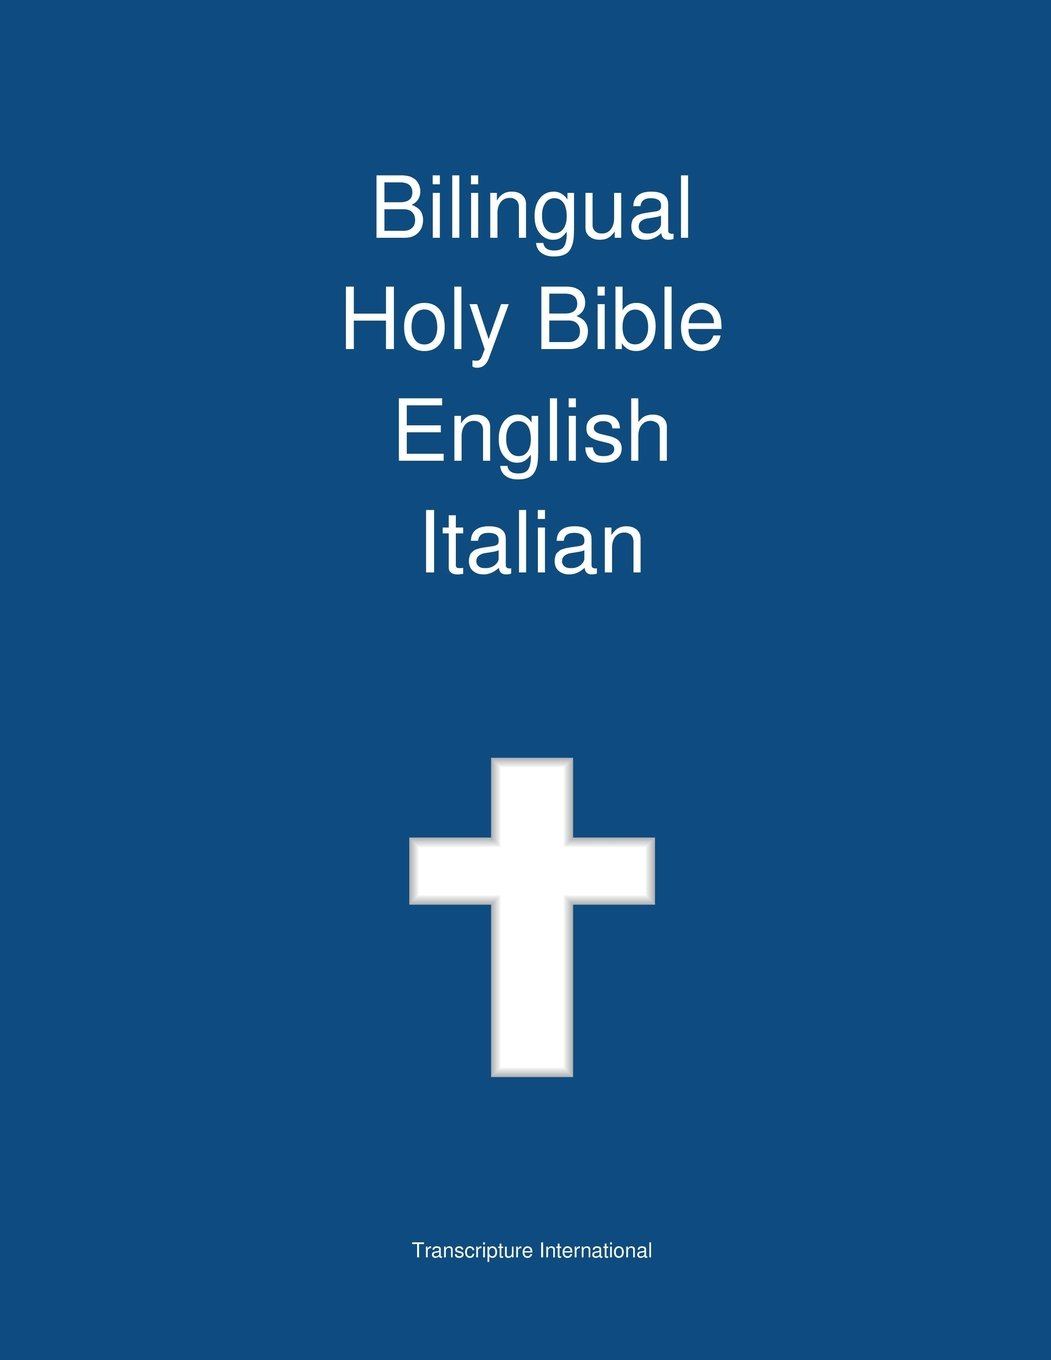 Bilingual Holy Bible, English - Italian